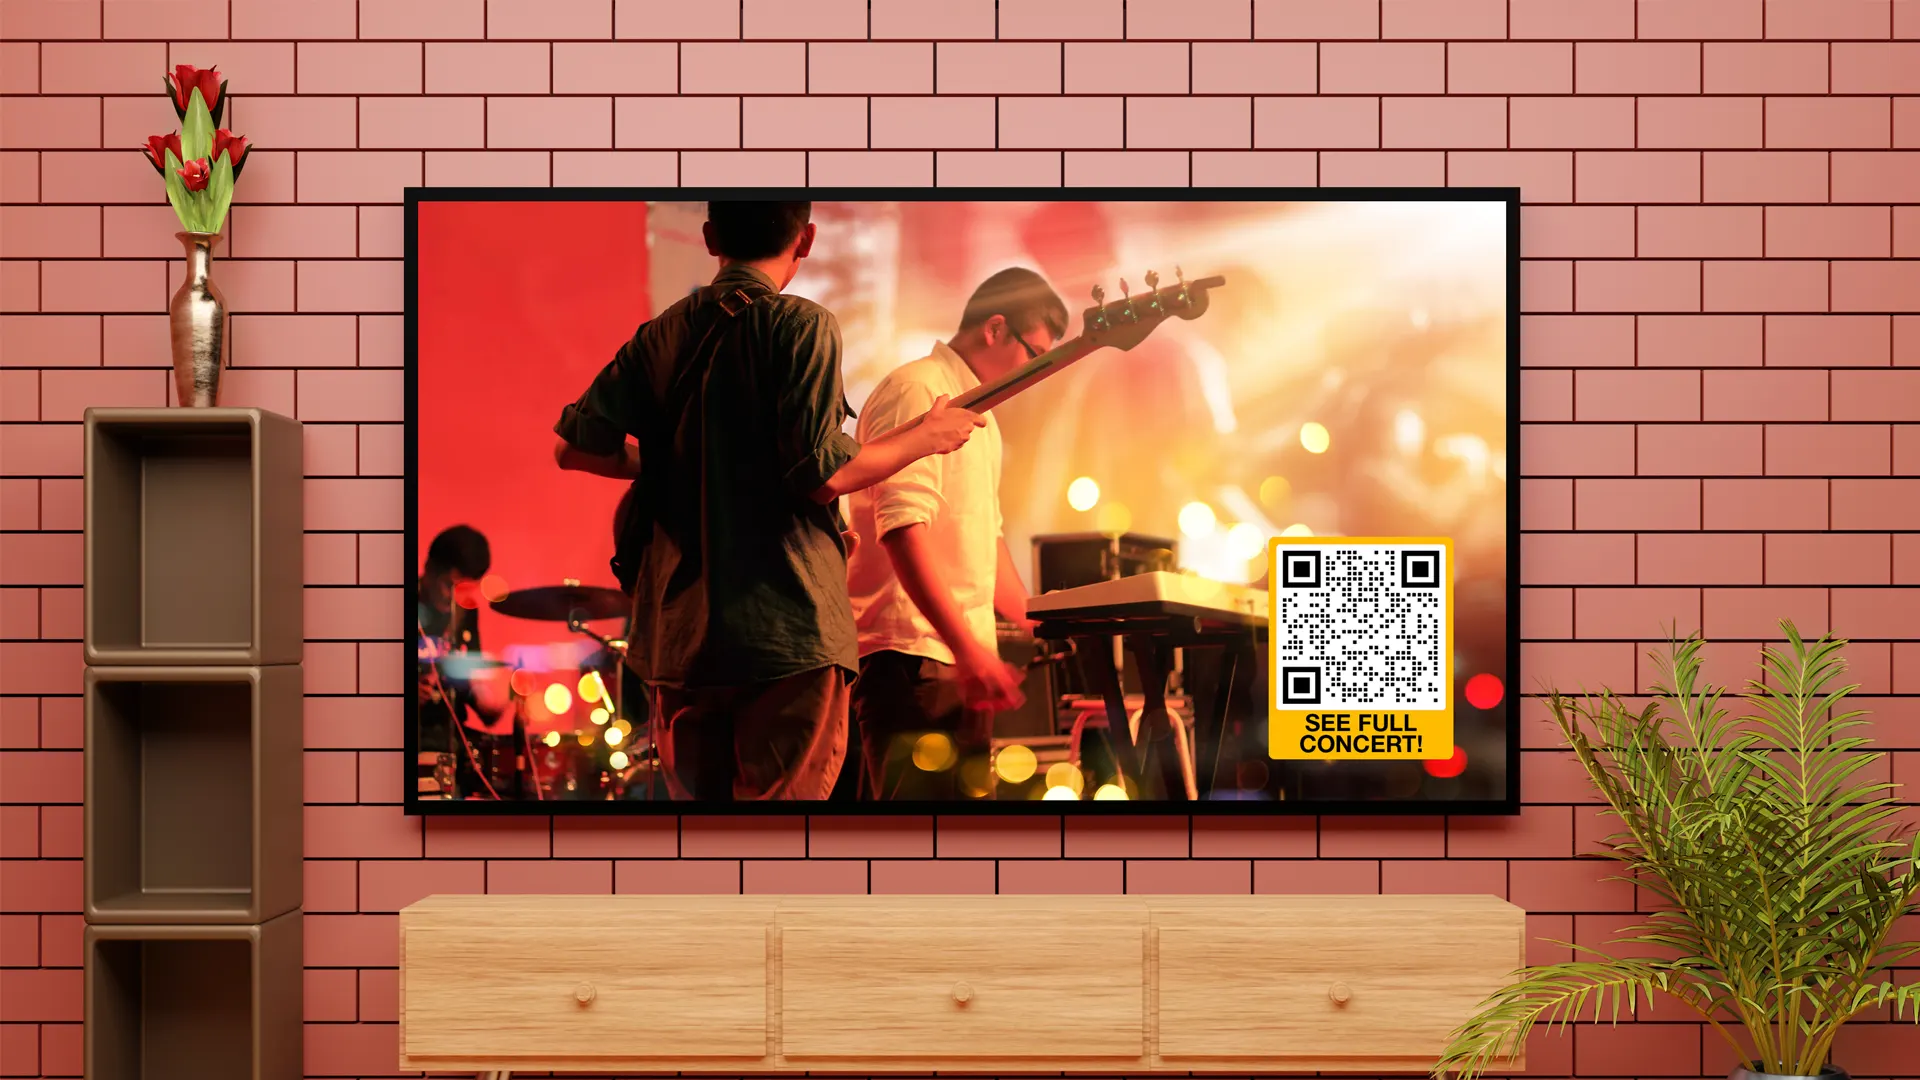 augmented reality qr code interactive content